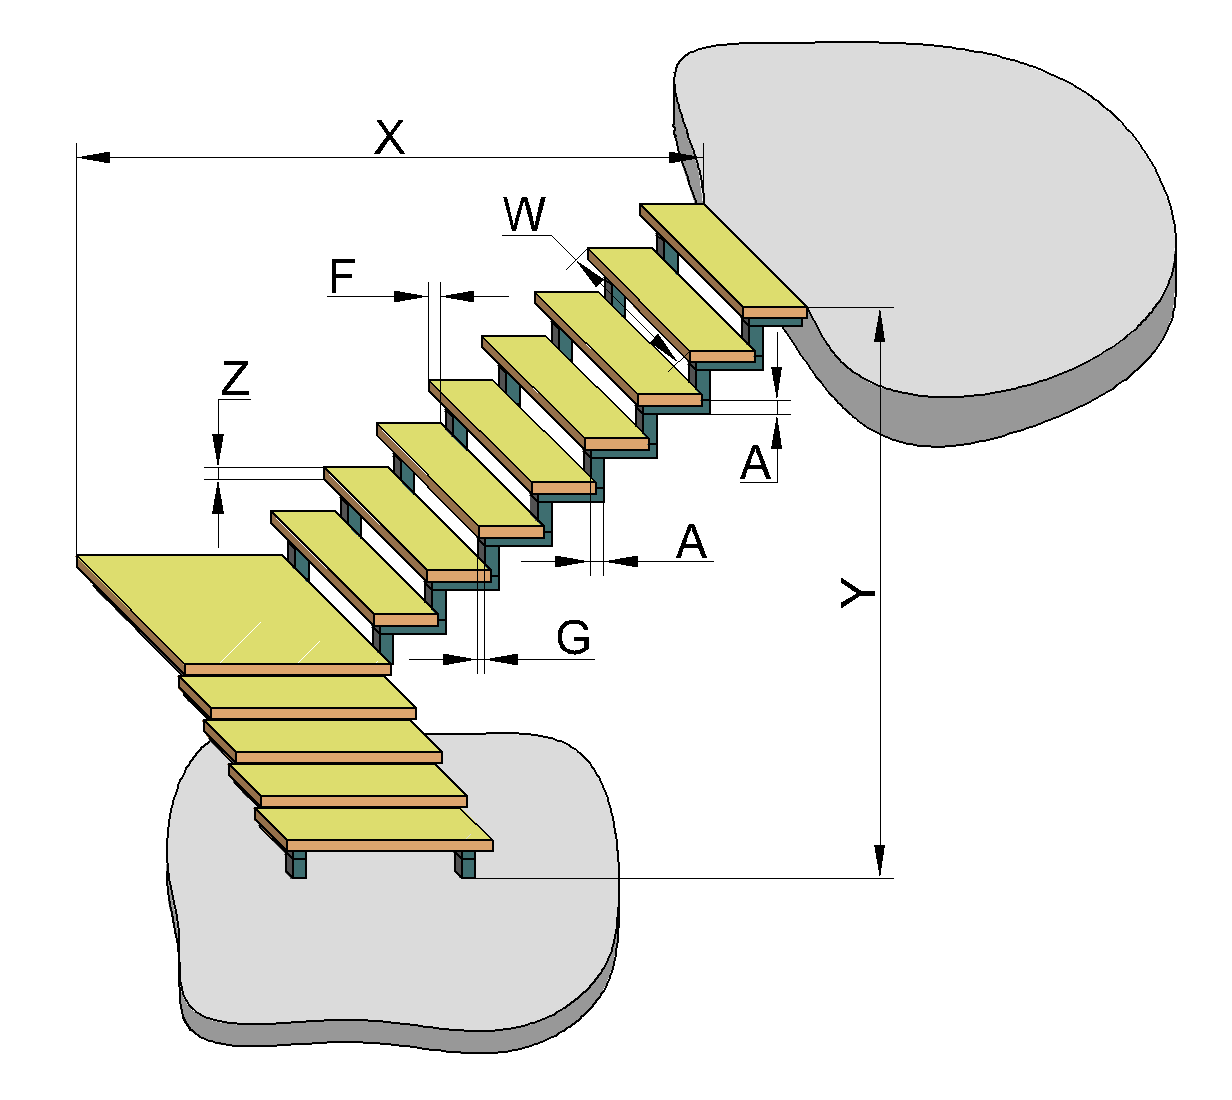 3D L-shaped steel stair calculator: saw-tooth stringers type